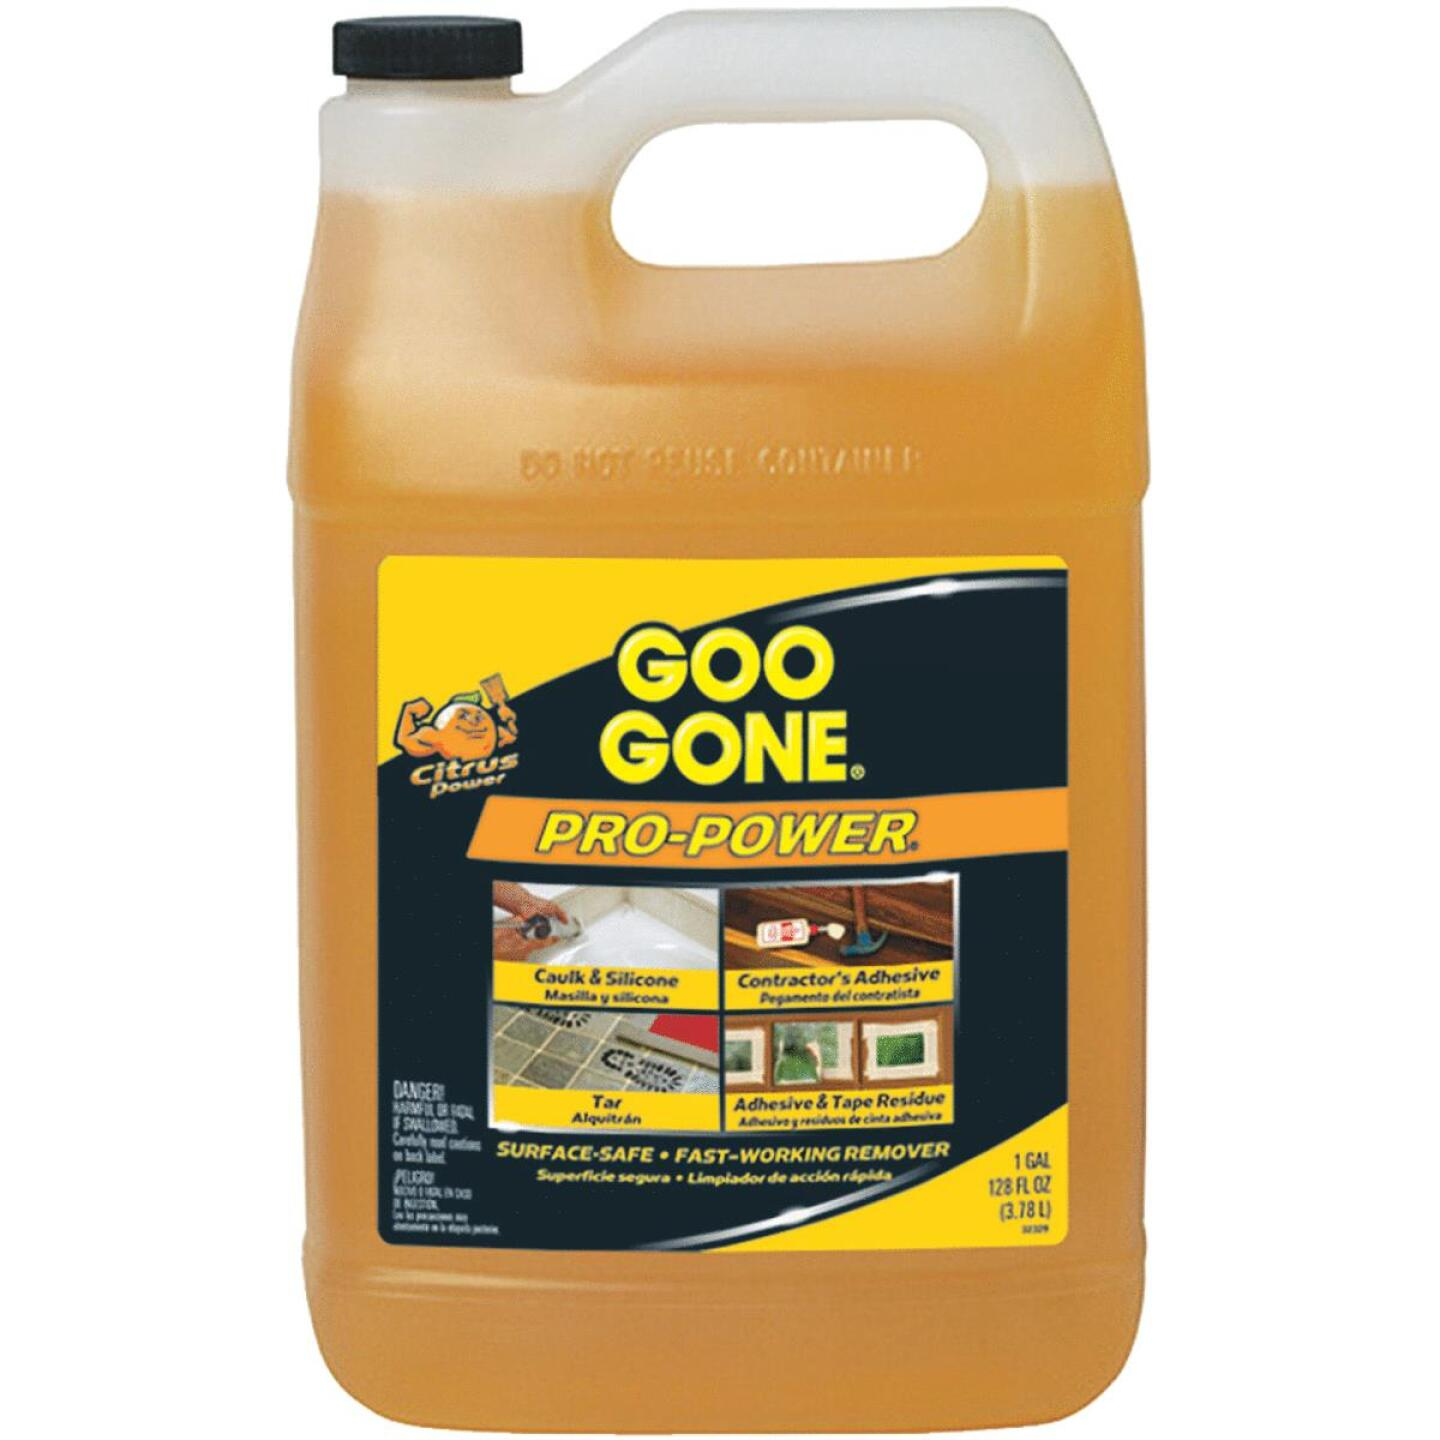 Goo Gone 1 Gal. Pro-Power Adhesive Remover Image 20